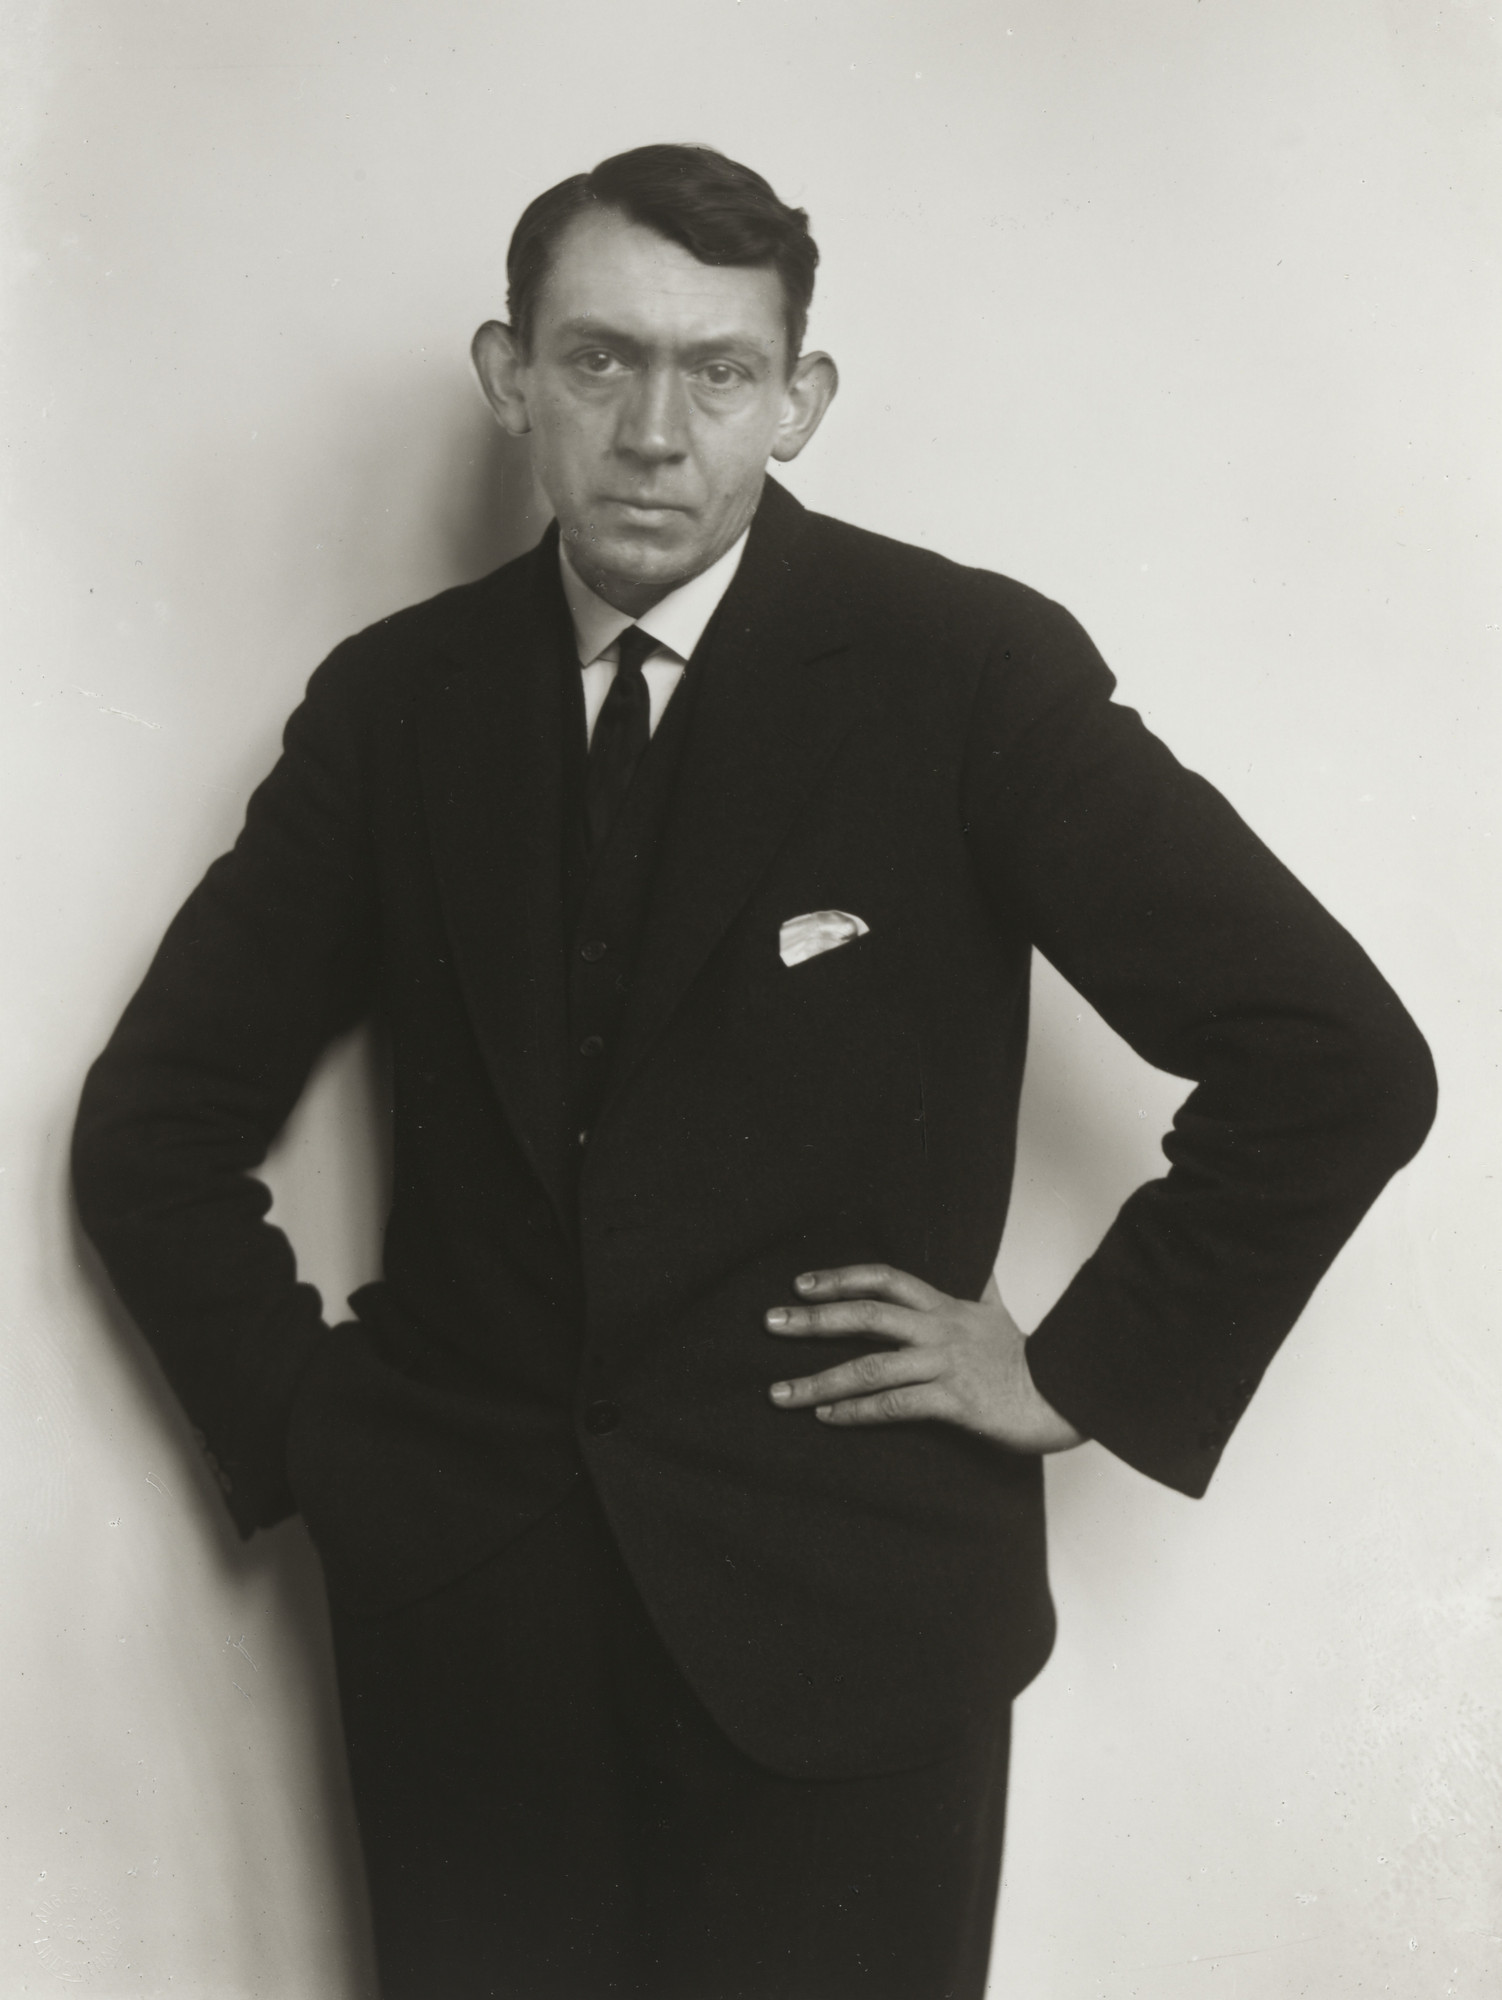 August Sander. Painter [Richard Seewald]. 1930